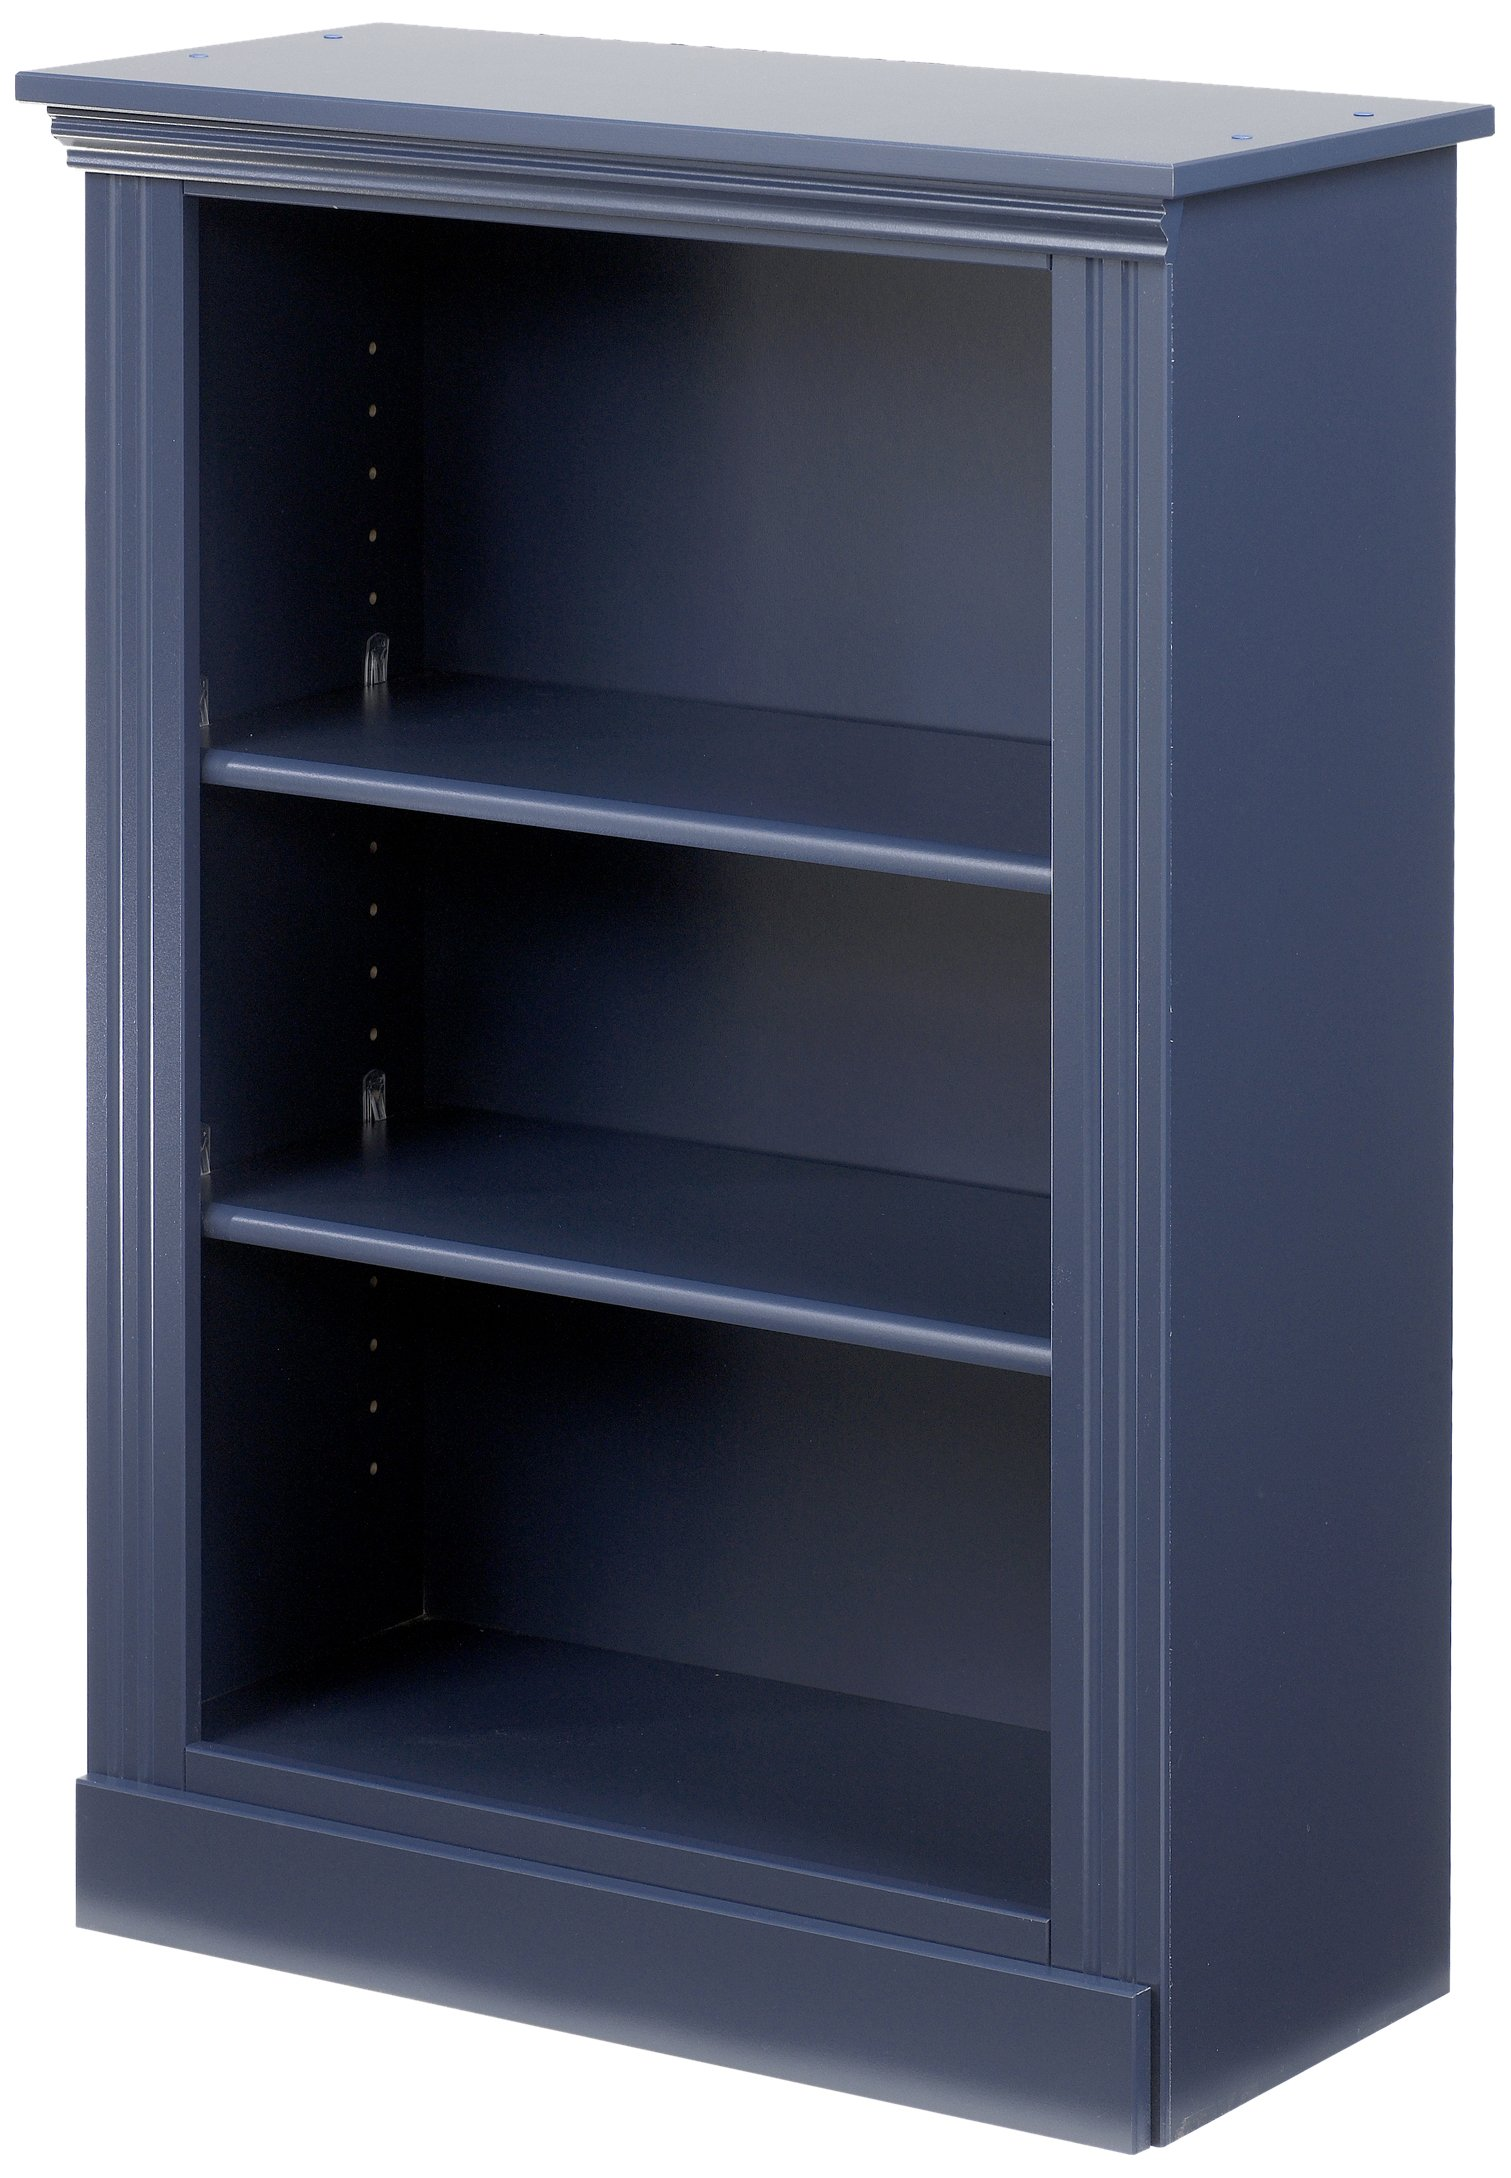 Lang Furniture Madison Book Shelf, 12 by 28 by 37-Inch, Indigo Blue